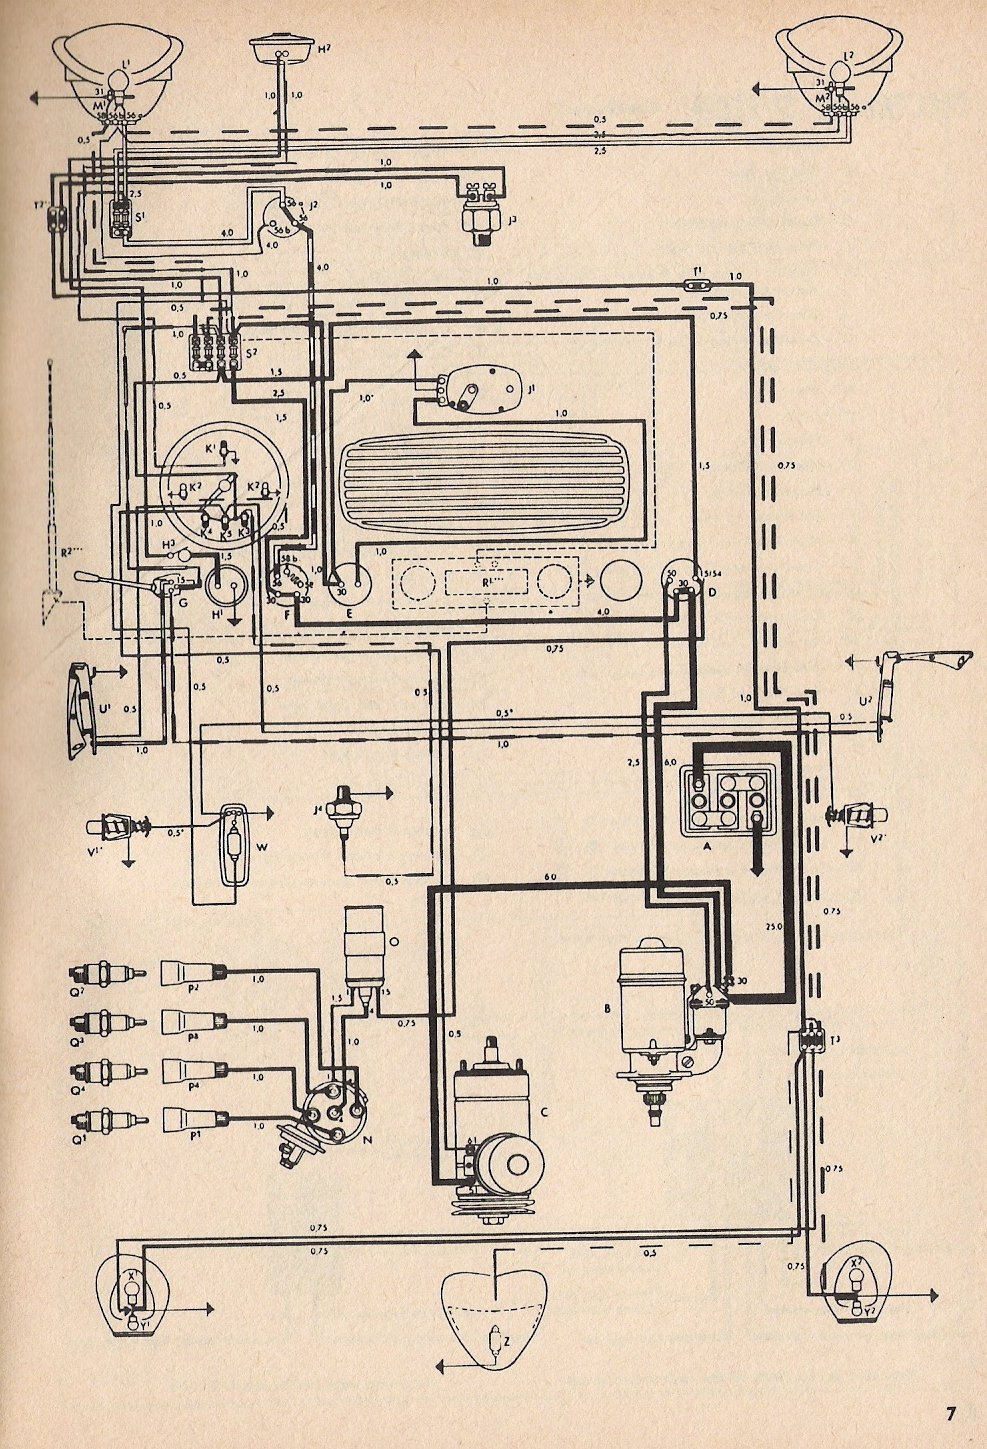 bug_54 thesamba com type 1 wiring diagrams 1971 vw bus wiring diagram at bayanpartner.co